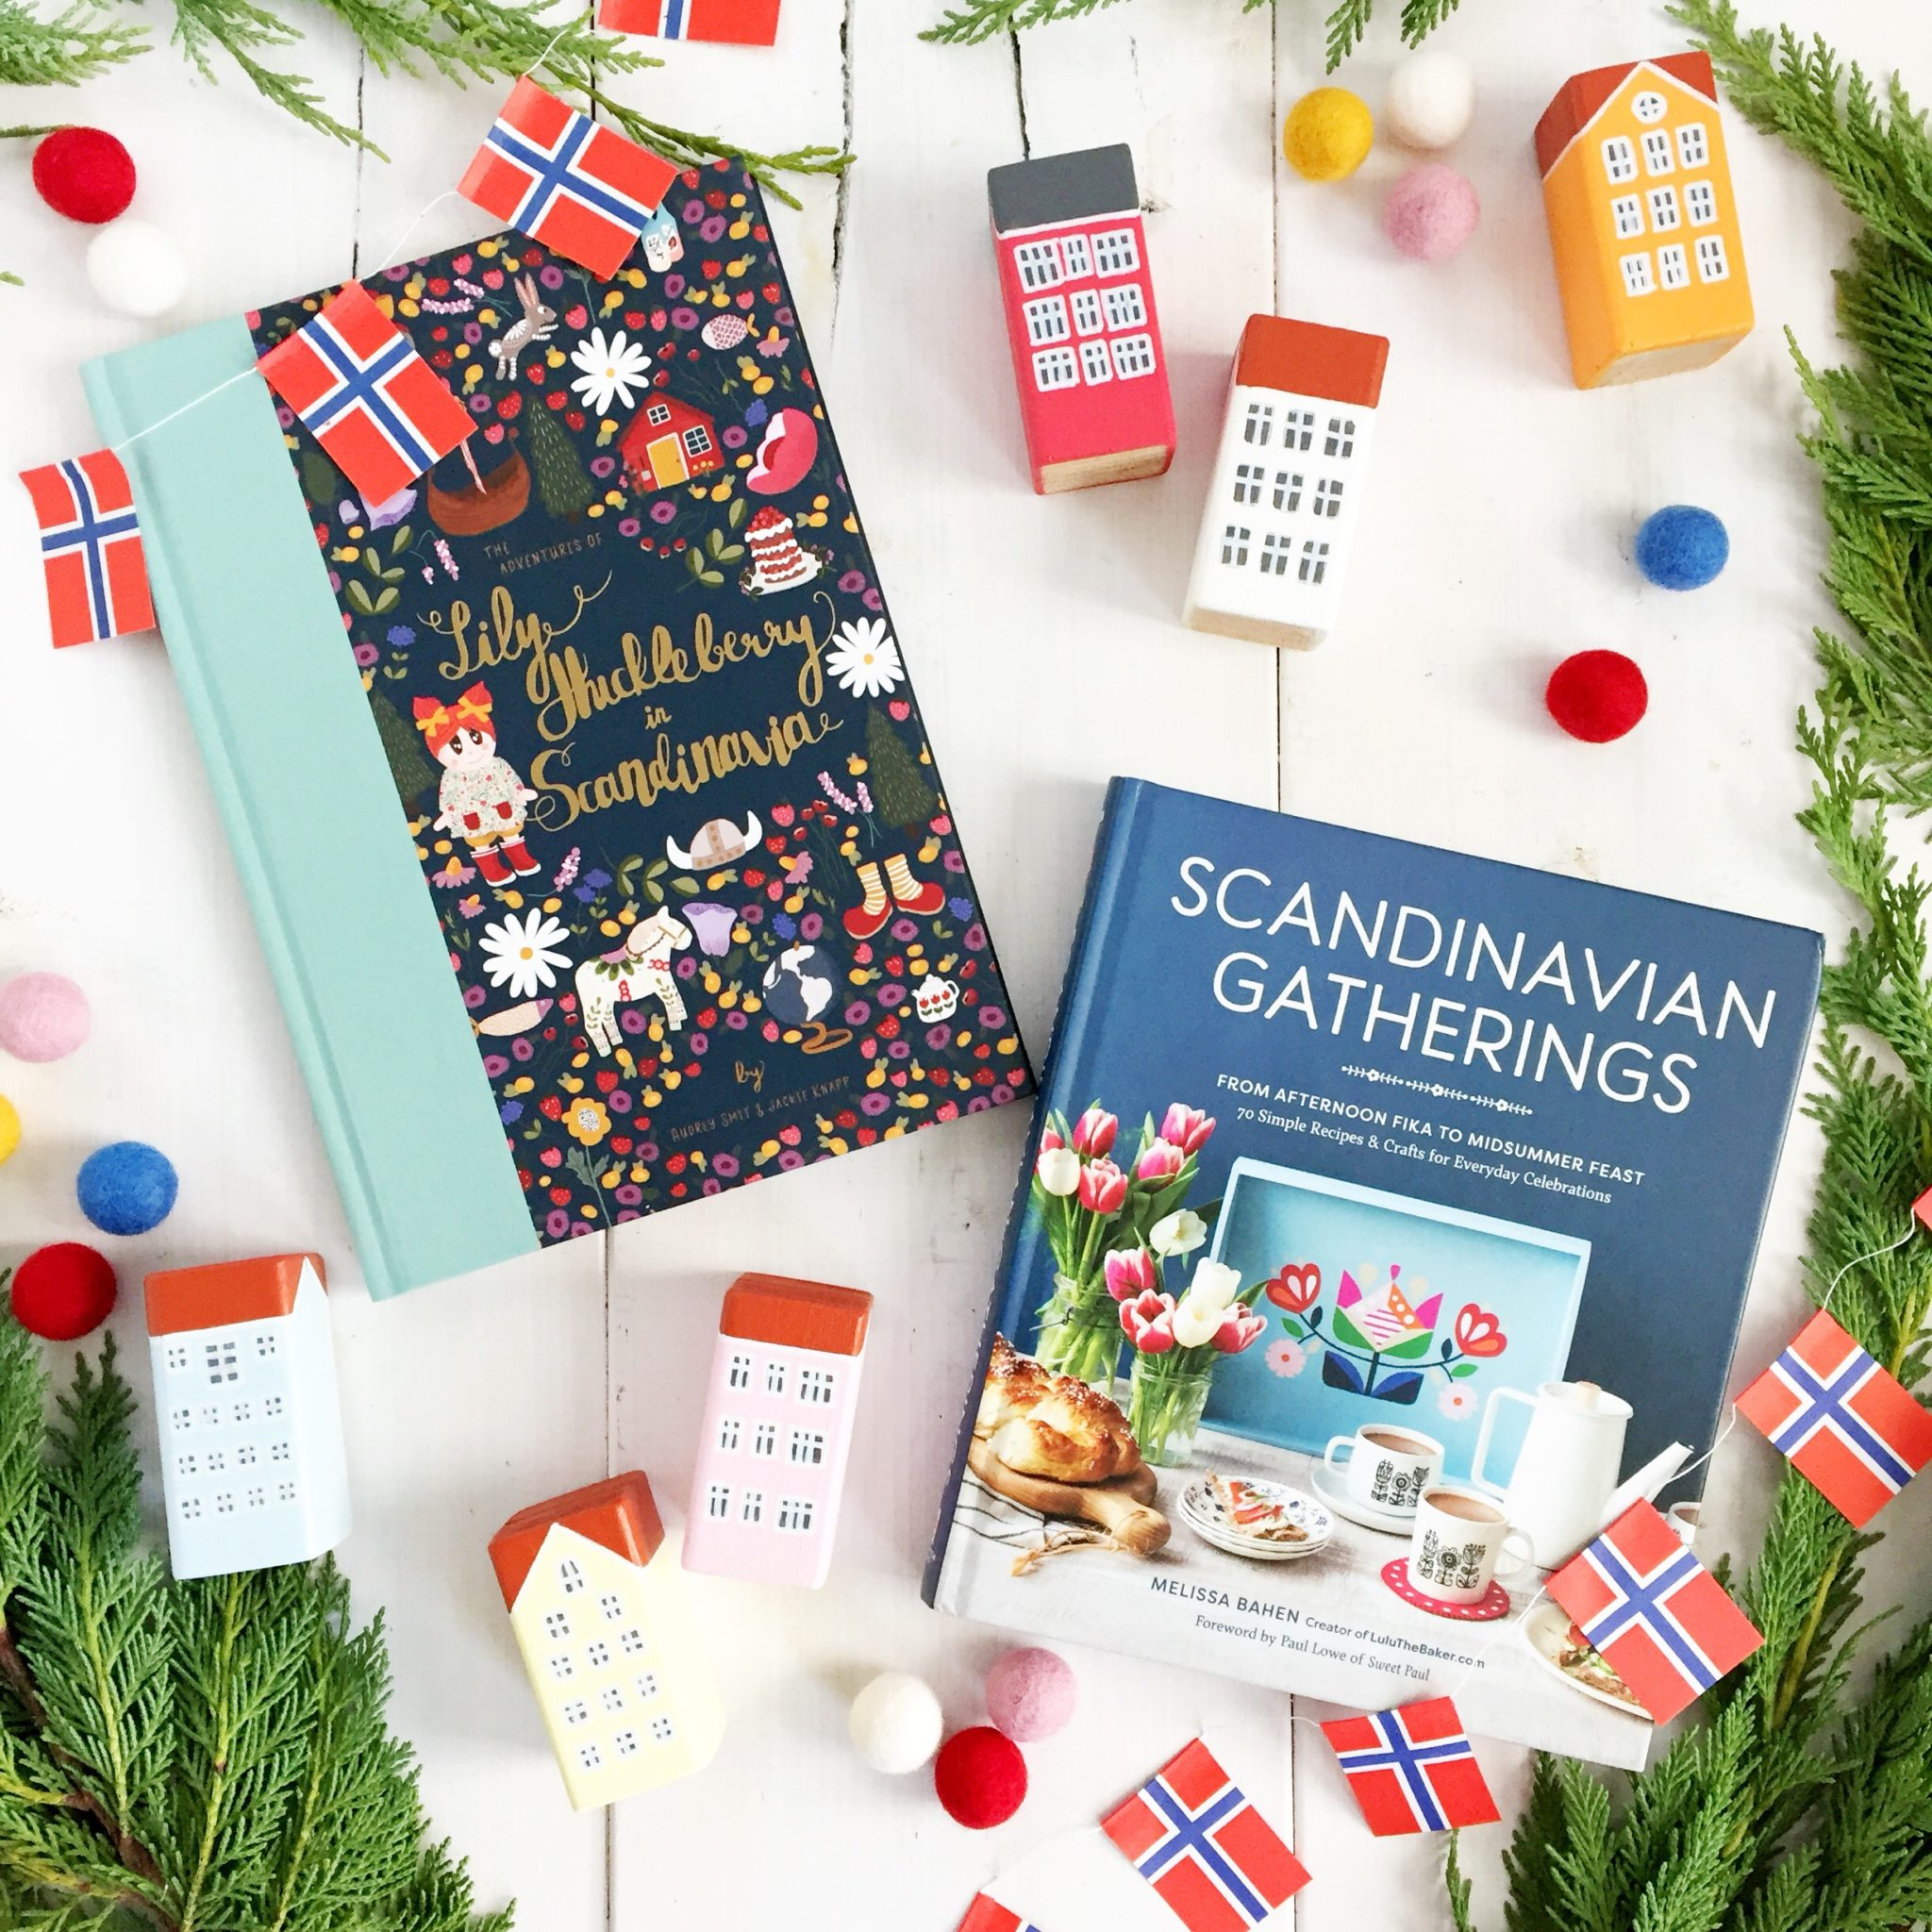 Scandinavian Gatherings and the Adventures of Lily Huckleberry in Scandinavia